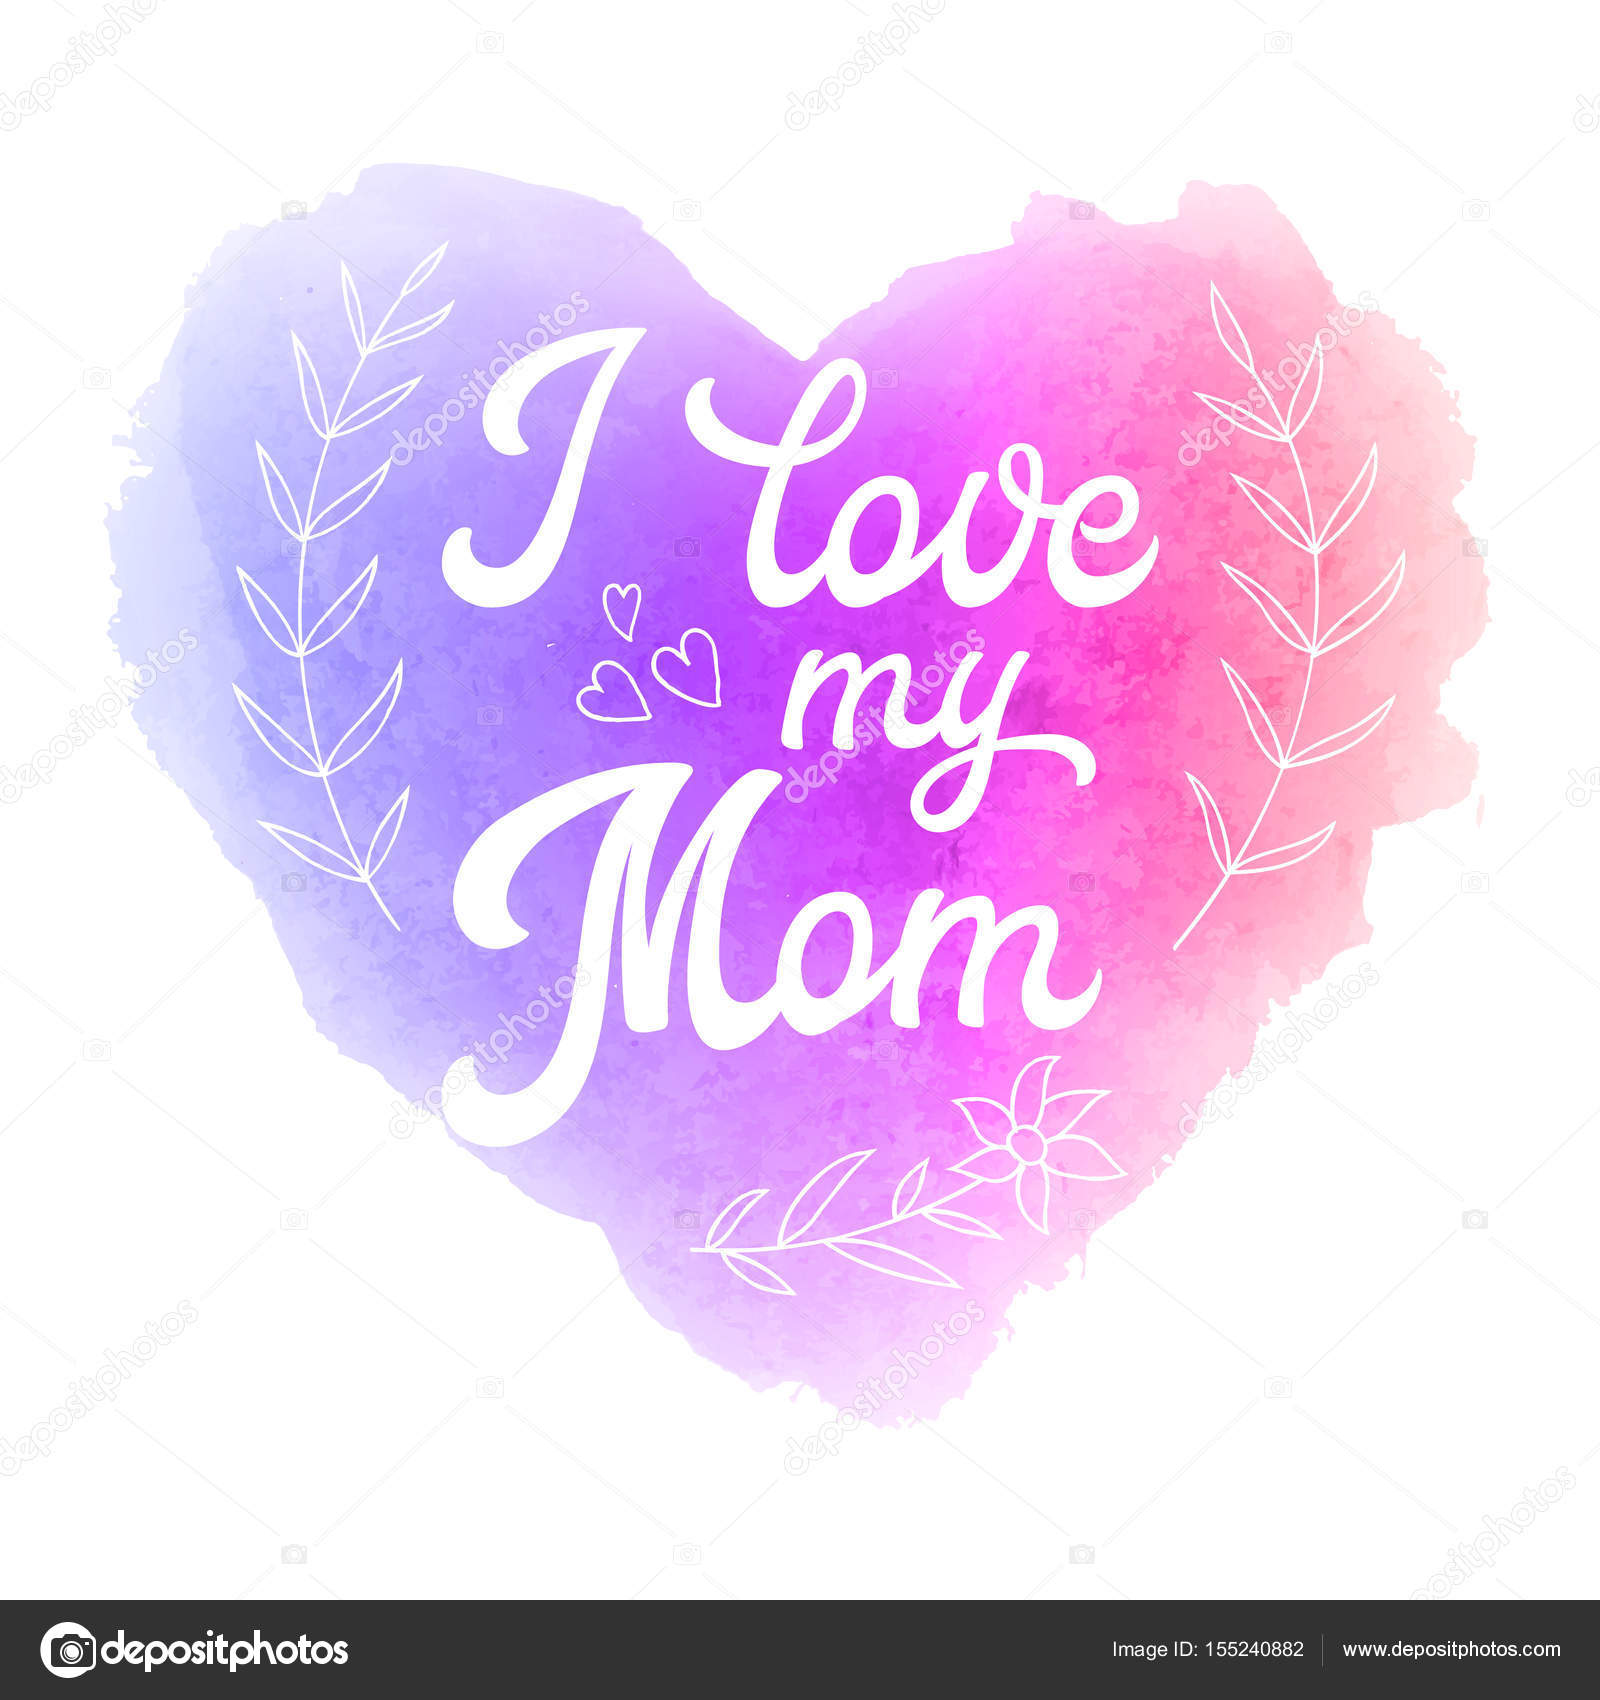 I love my mom greeting card with heart and hand lettering text on i love my mom greeting card with heart and hand lettering text on abstract pink altavistaventures Choice Image